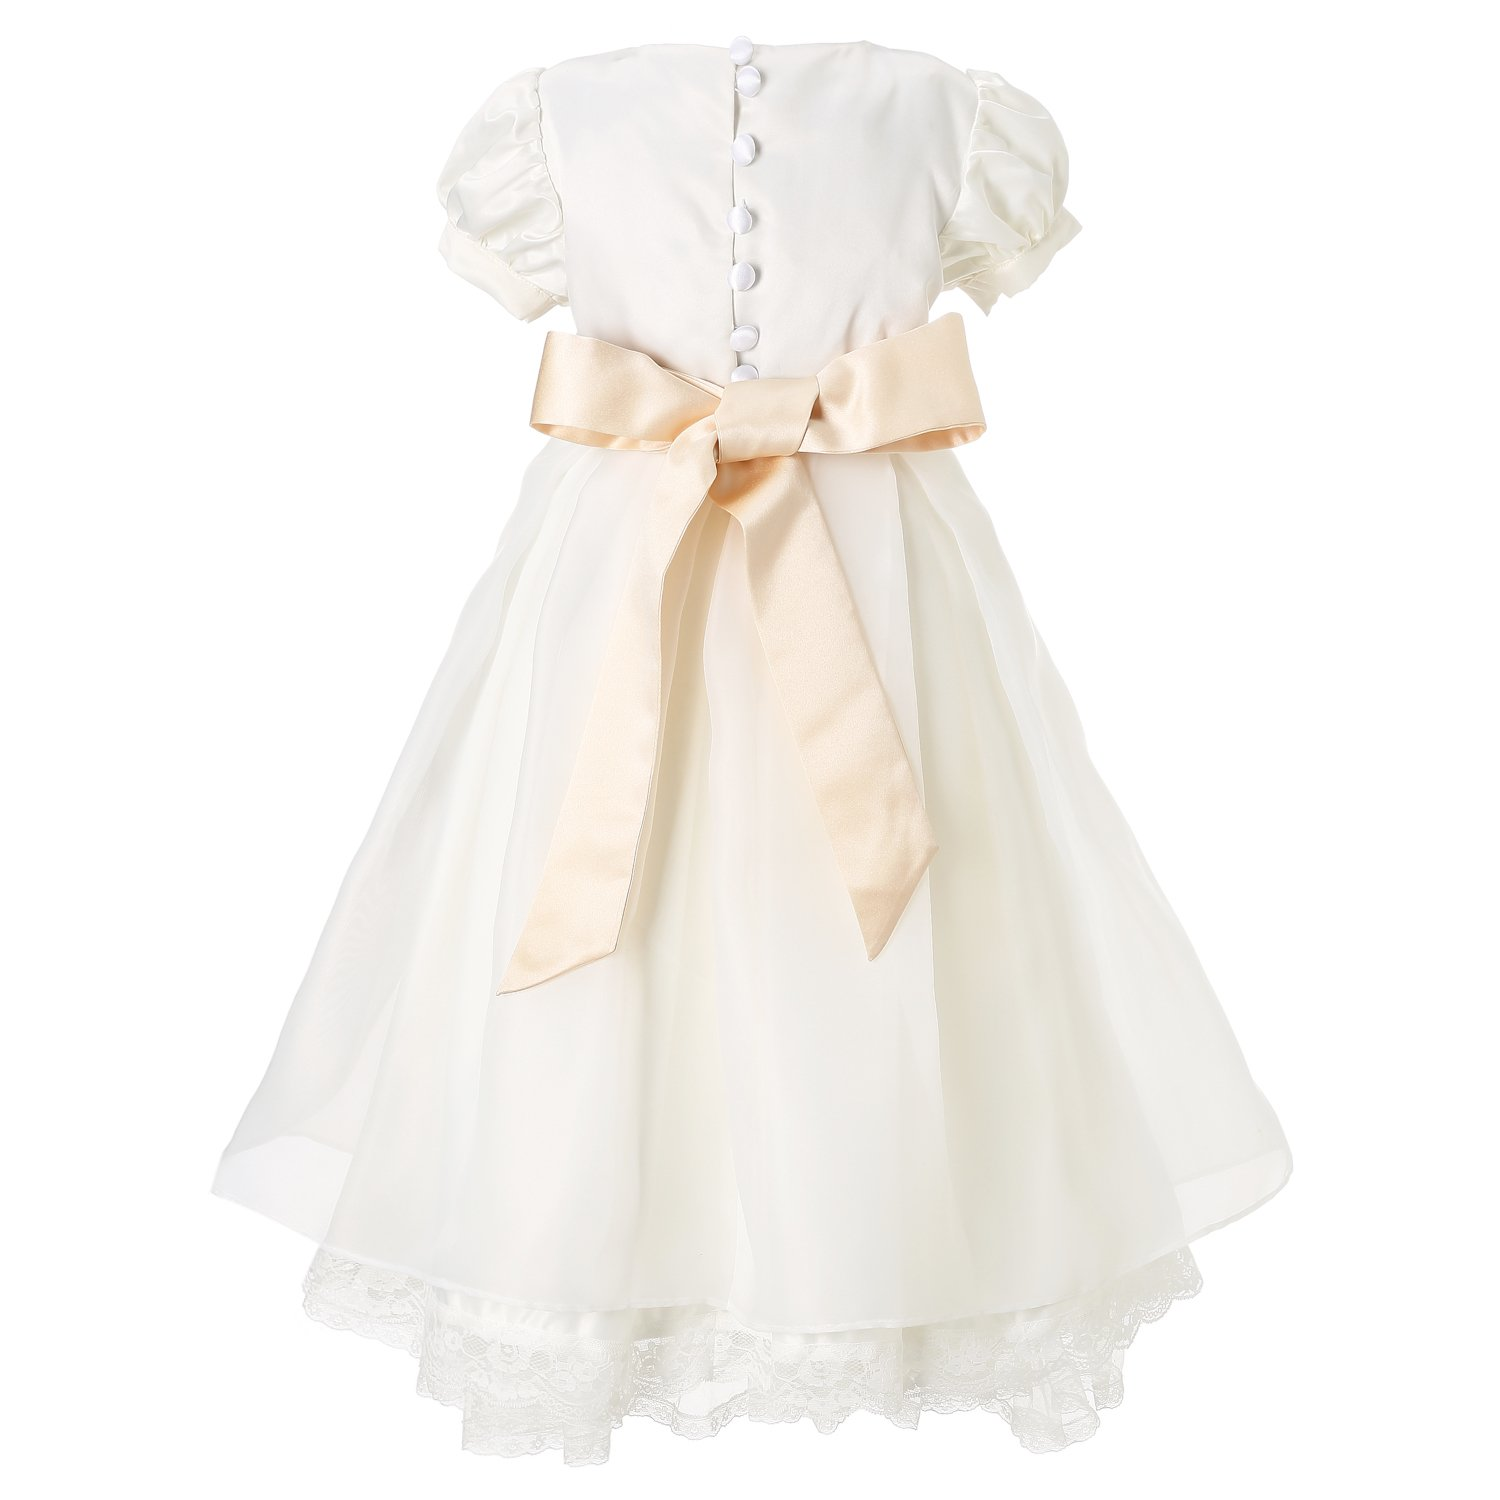 Hanakimi A-line//Princess Juliet Ankle-Length Communion Dress JMK1627